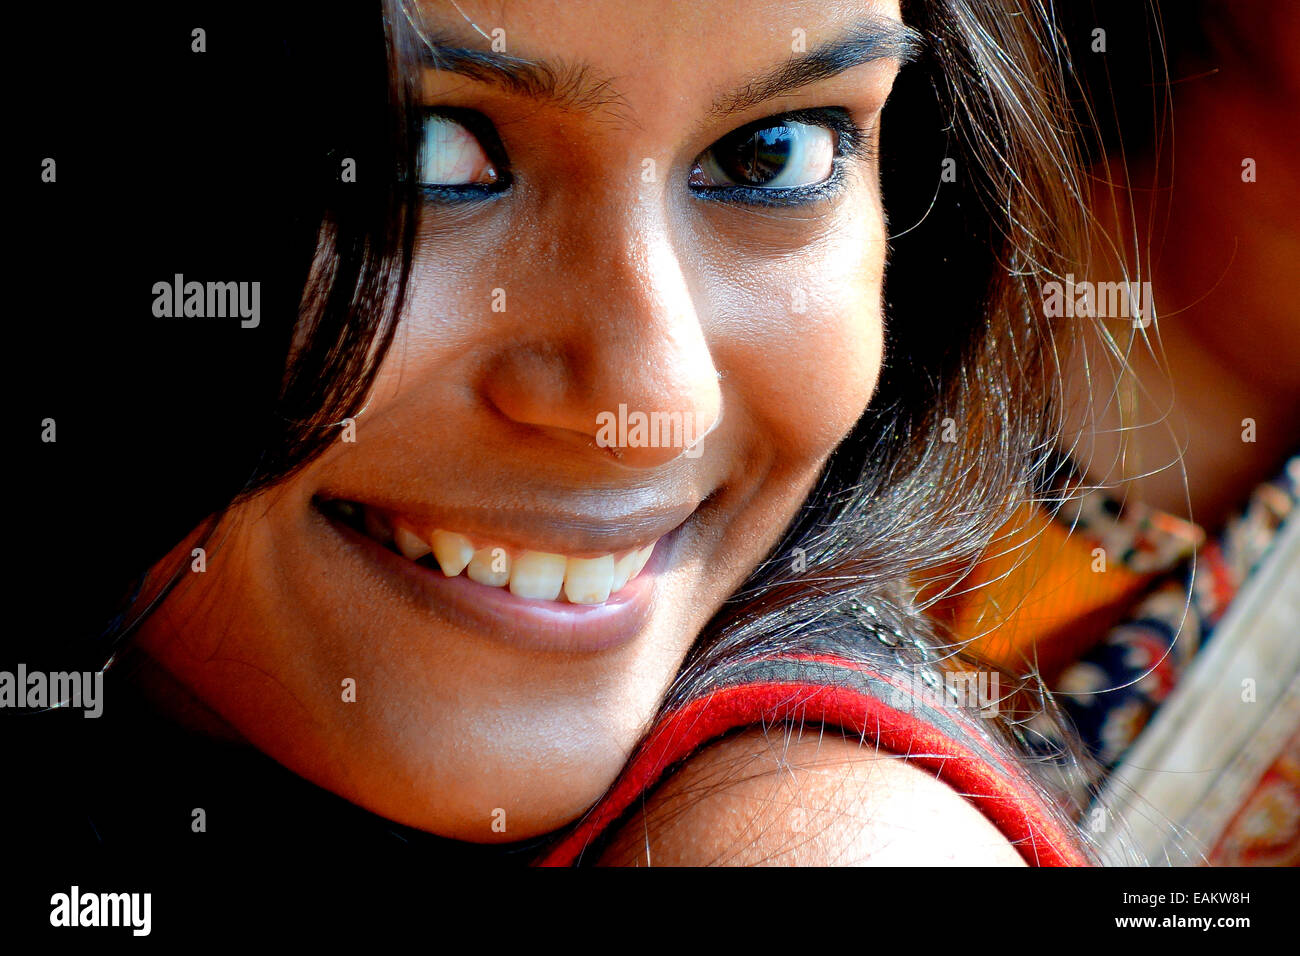 young,girl,beautiful,big eyes,Bengali,Indian,woman,sultry,smiling,attractive - Stock Image